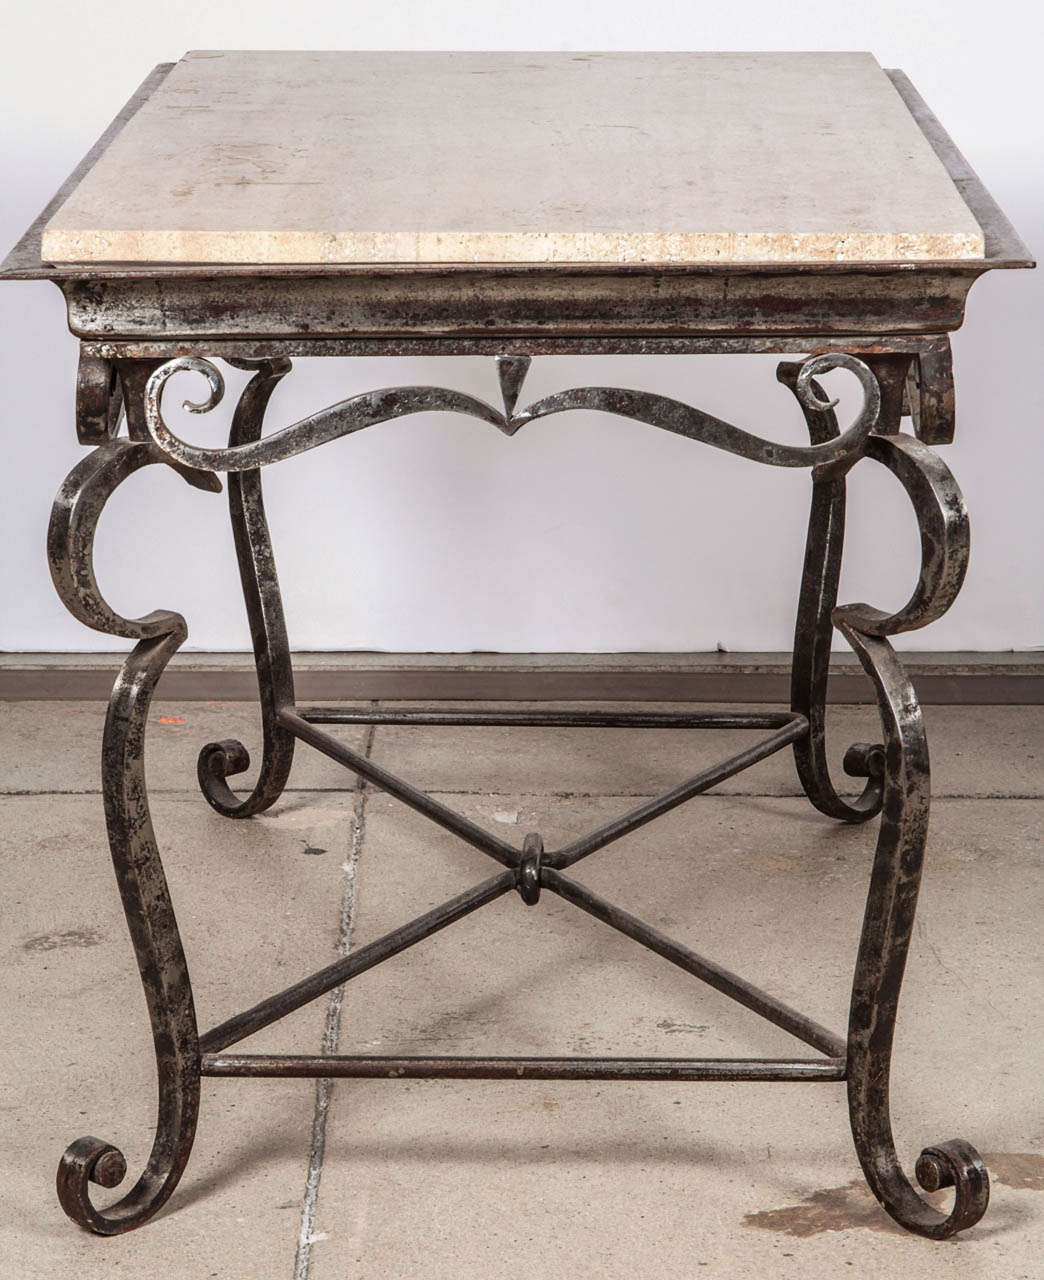 Iron Marble Top Coffee Table: Iron Coffee Table With Travertine Marble Top For Sale At